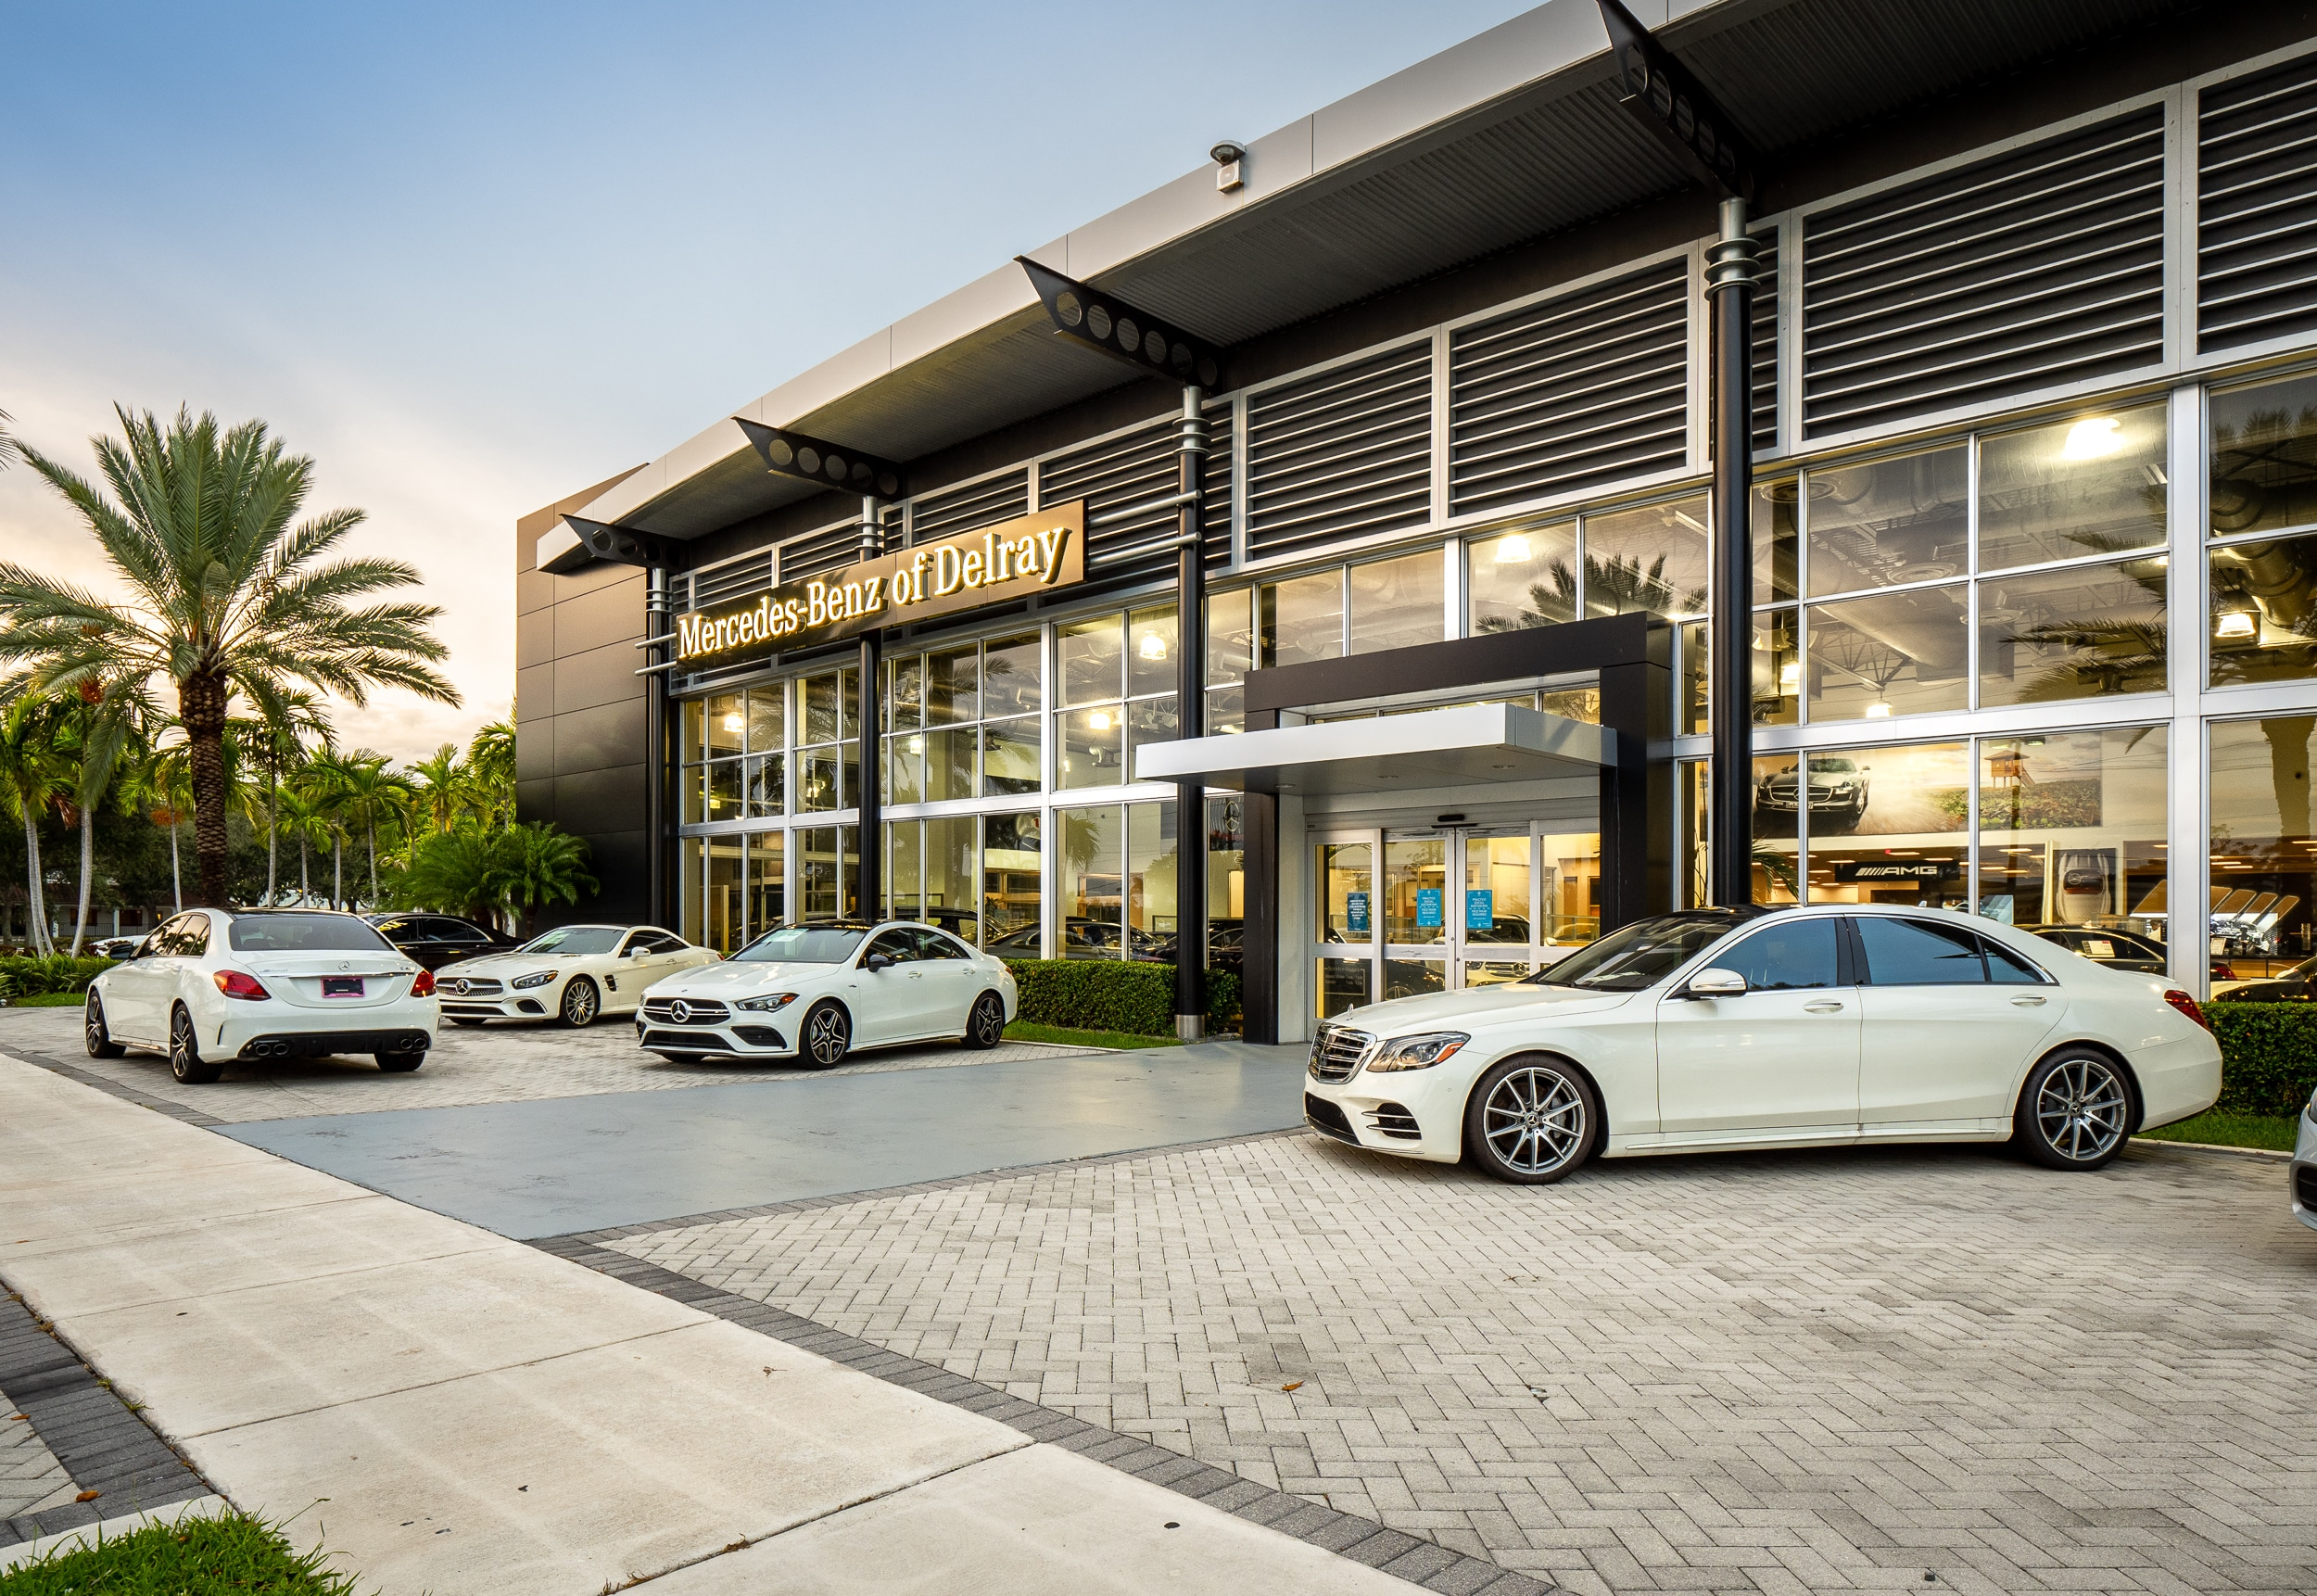 Outside view of Mercedes-Benz of Delray